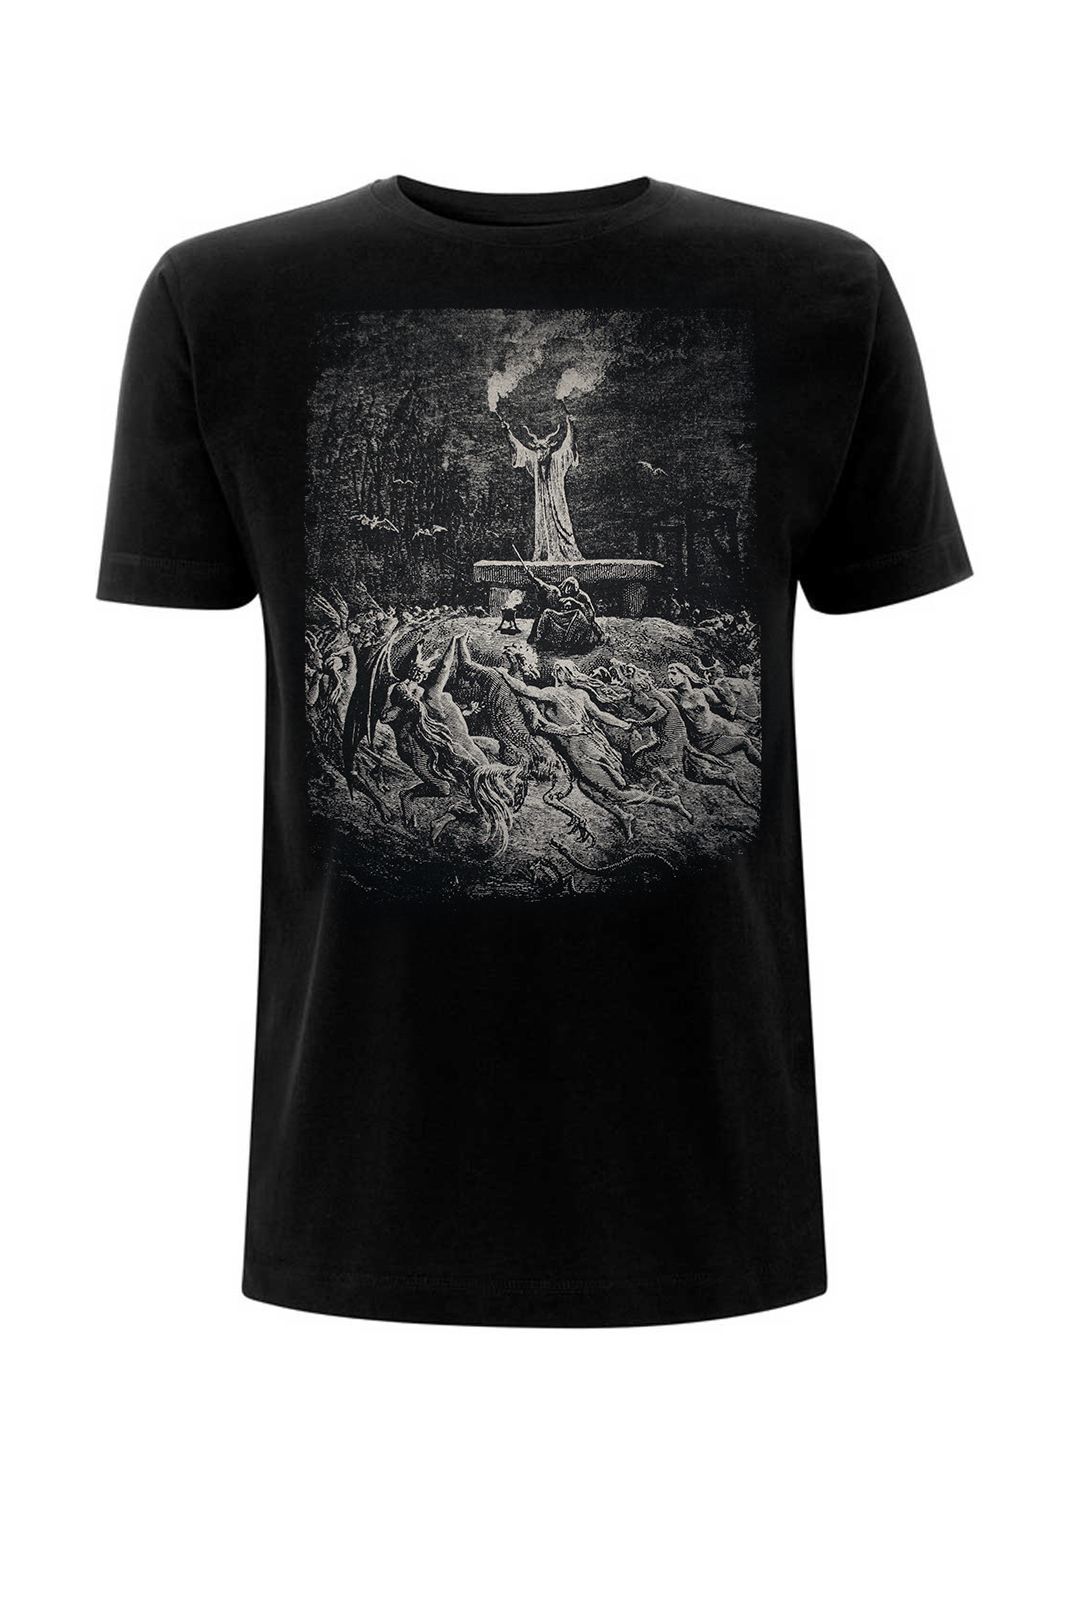 Tee Witches Sabbath Black